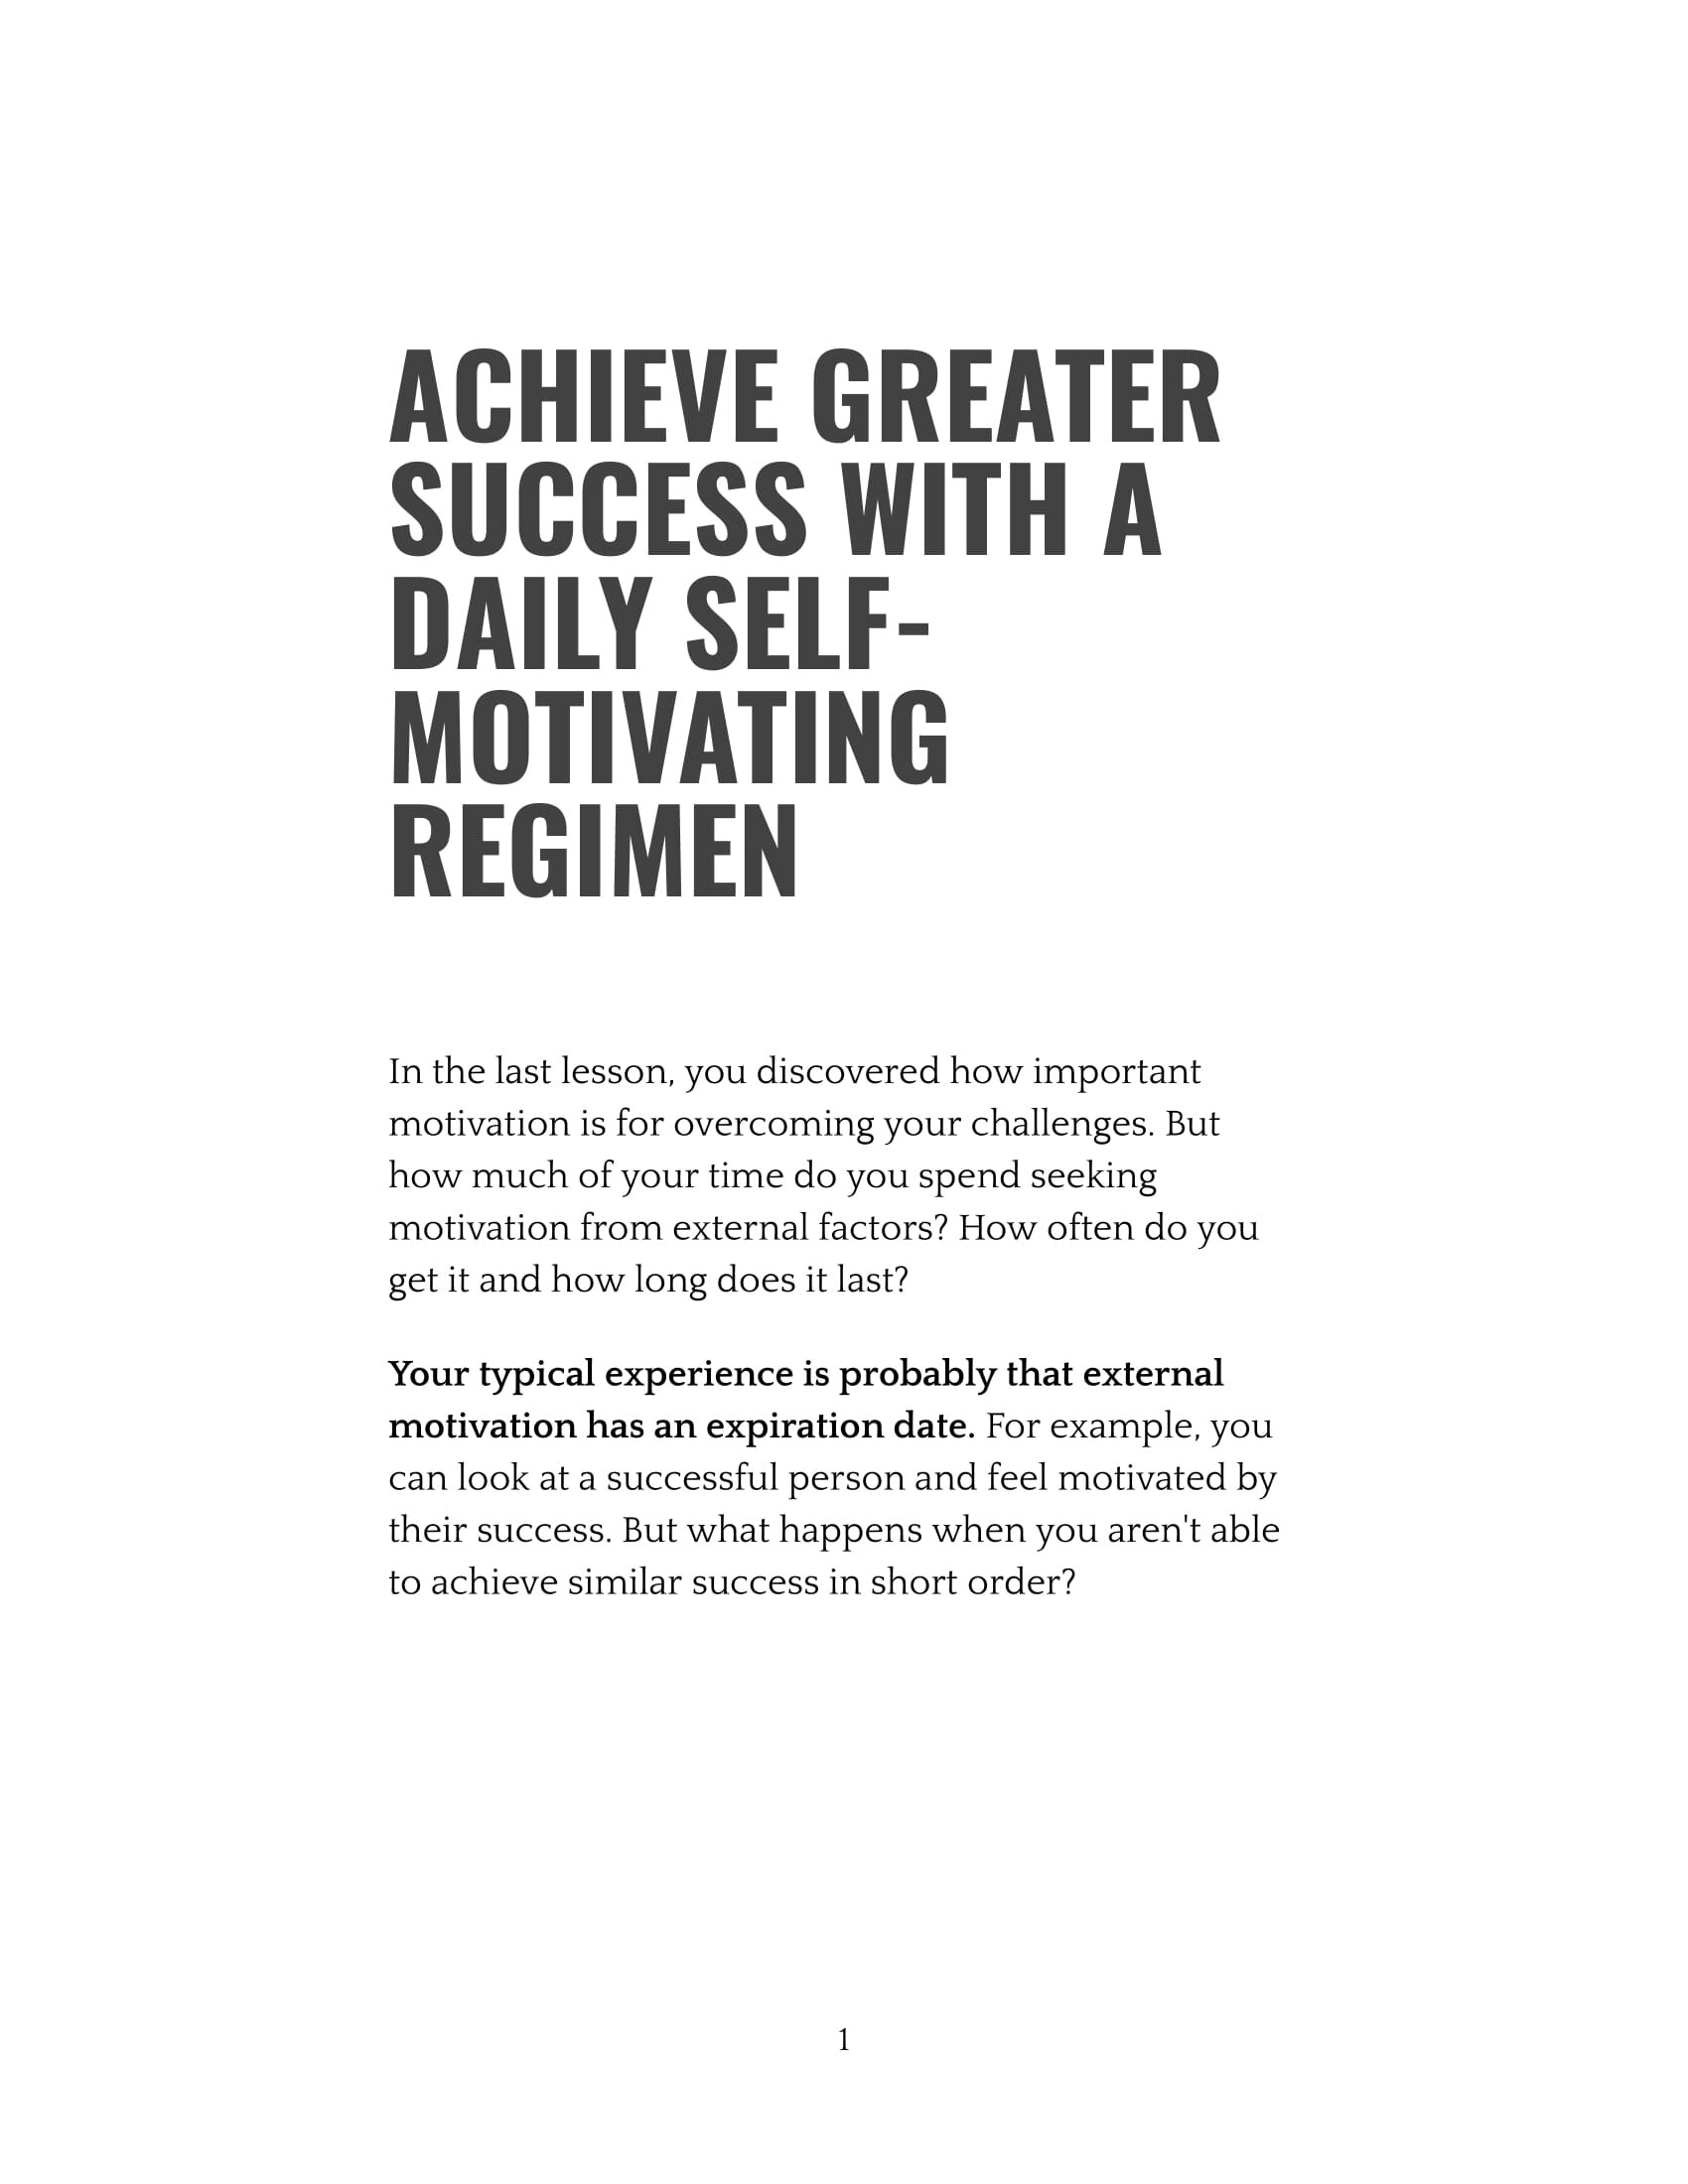 Achieve Greater Success With A Daily Self Motivating Regimen-1.jpg